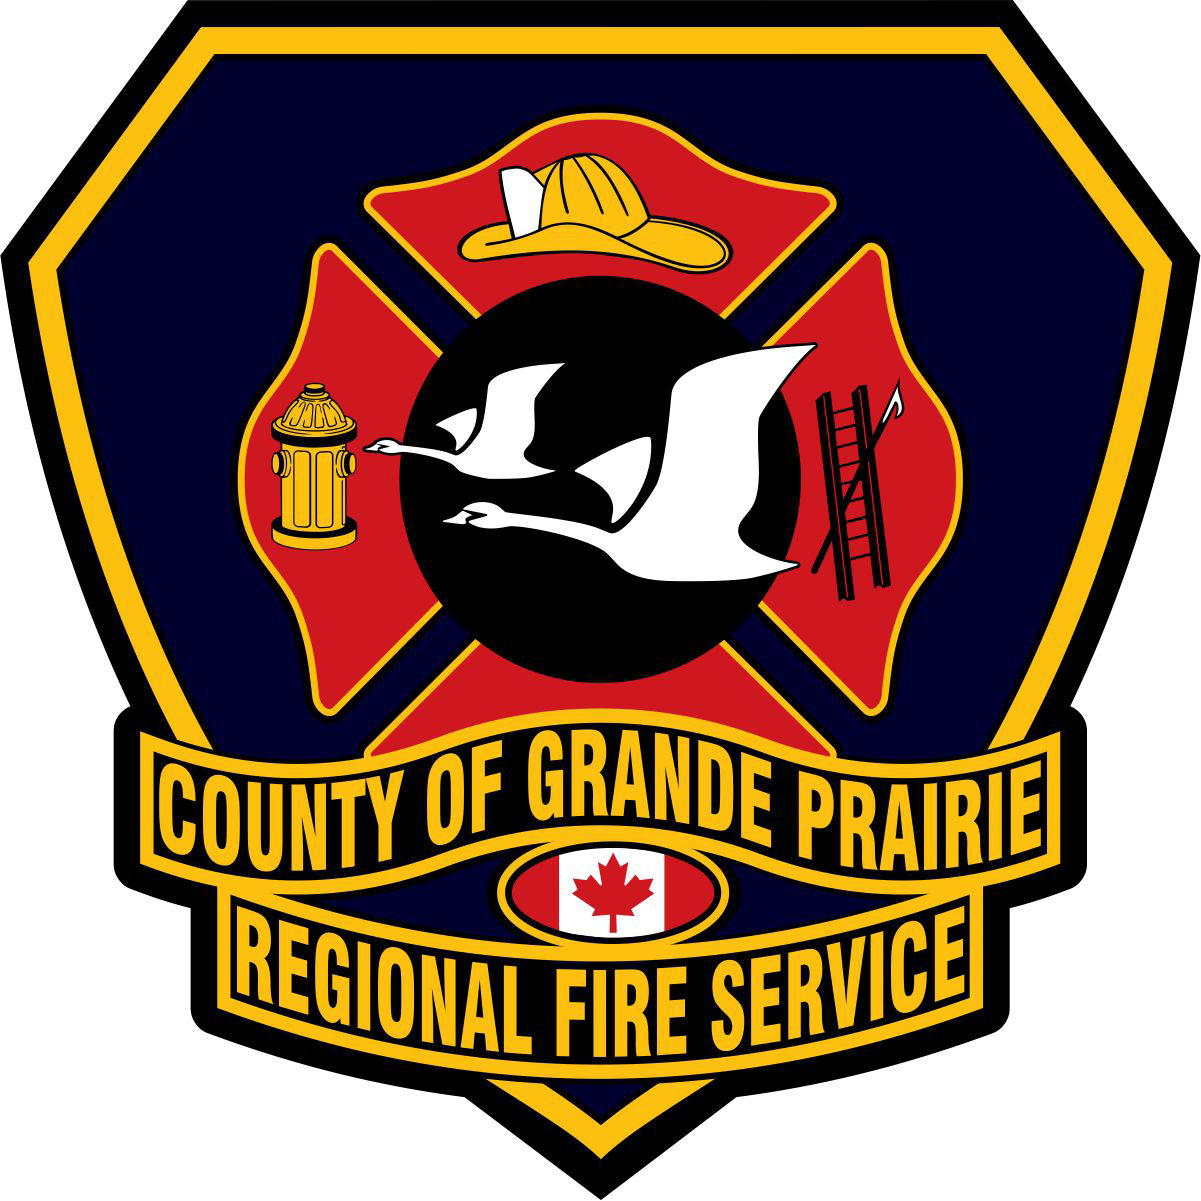 County of Grand Prairie Regional Fire Service